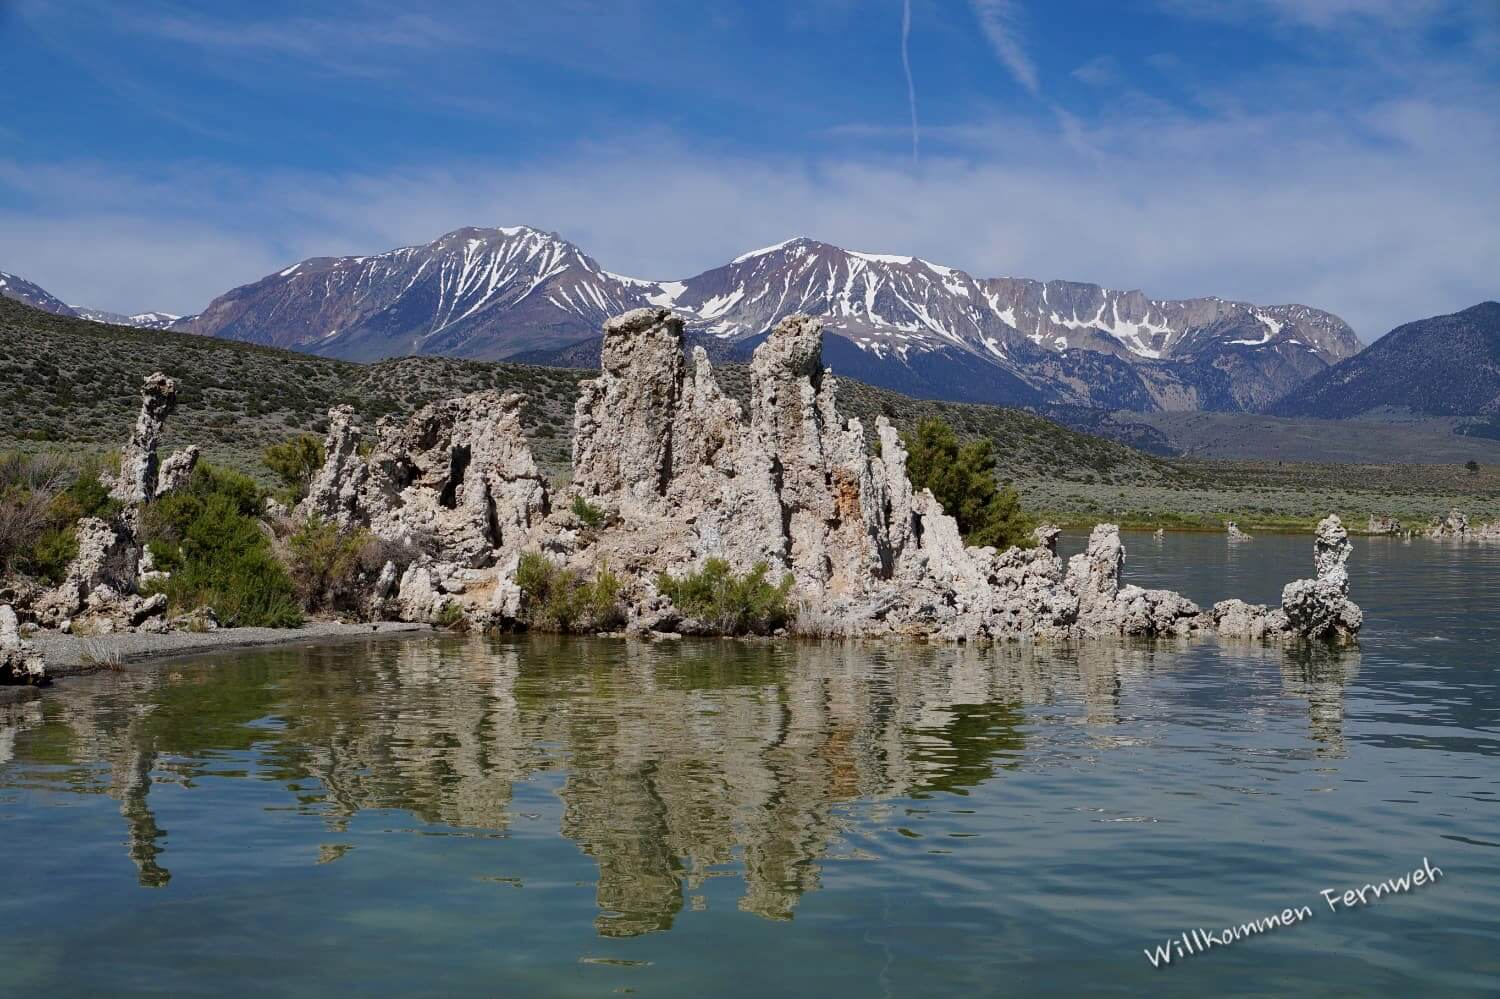 Tufa-Formationen am Mono Lake, Kalifornien